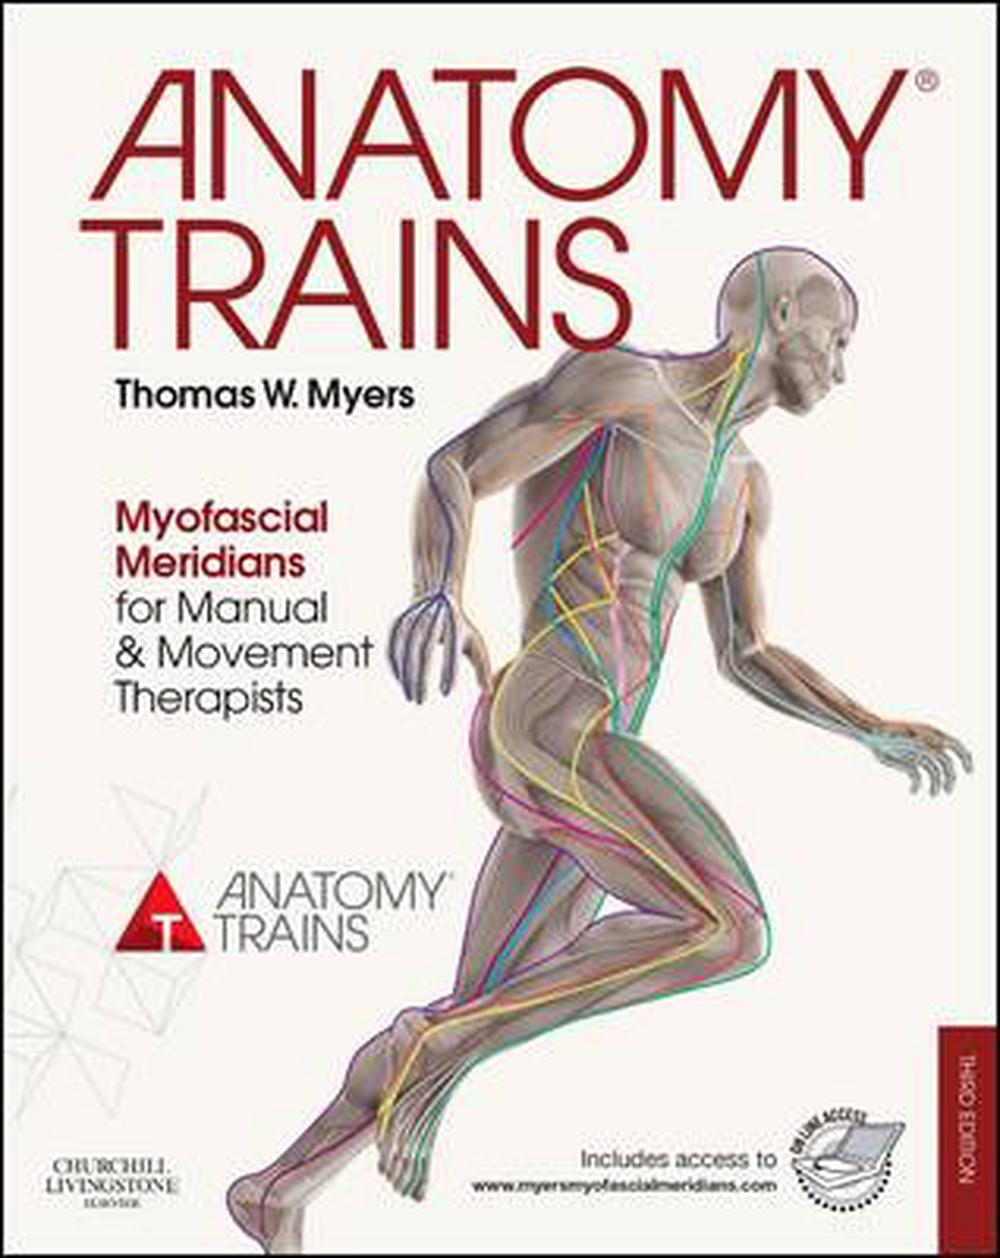 Anatomy Trains by Thomas W. Myers, Paperback, 9780702046544 | Buy ...